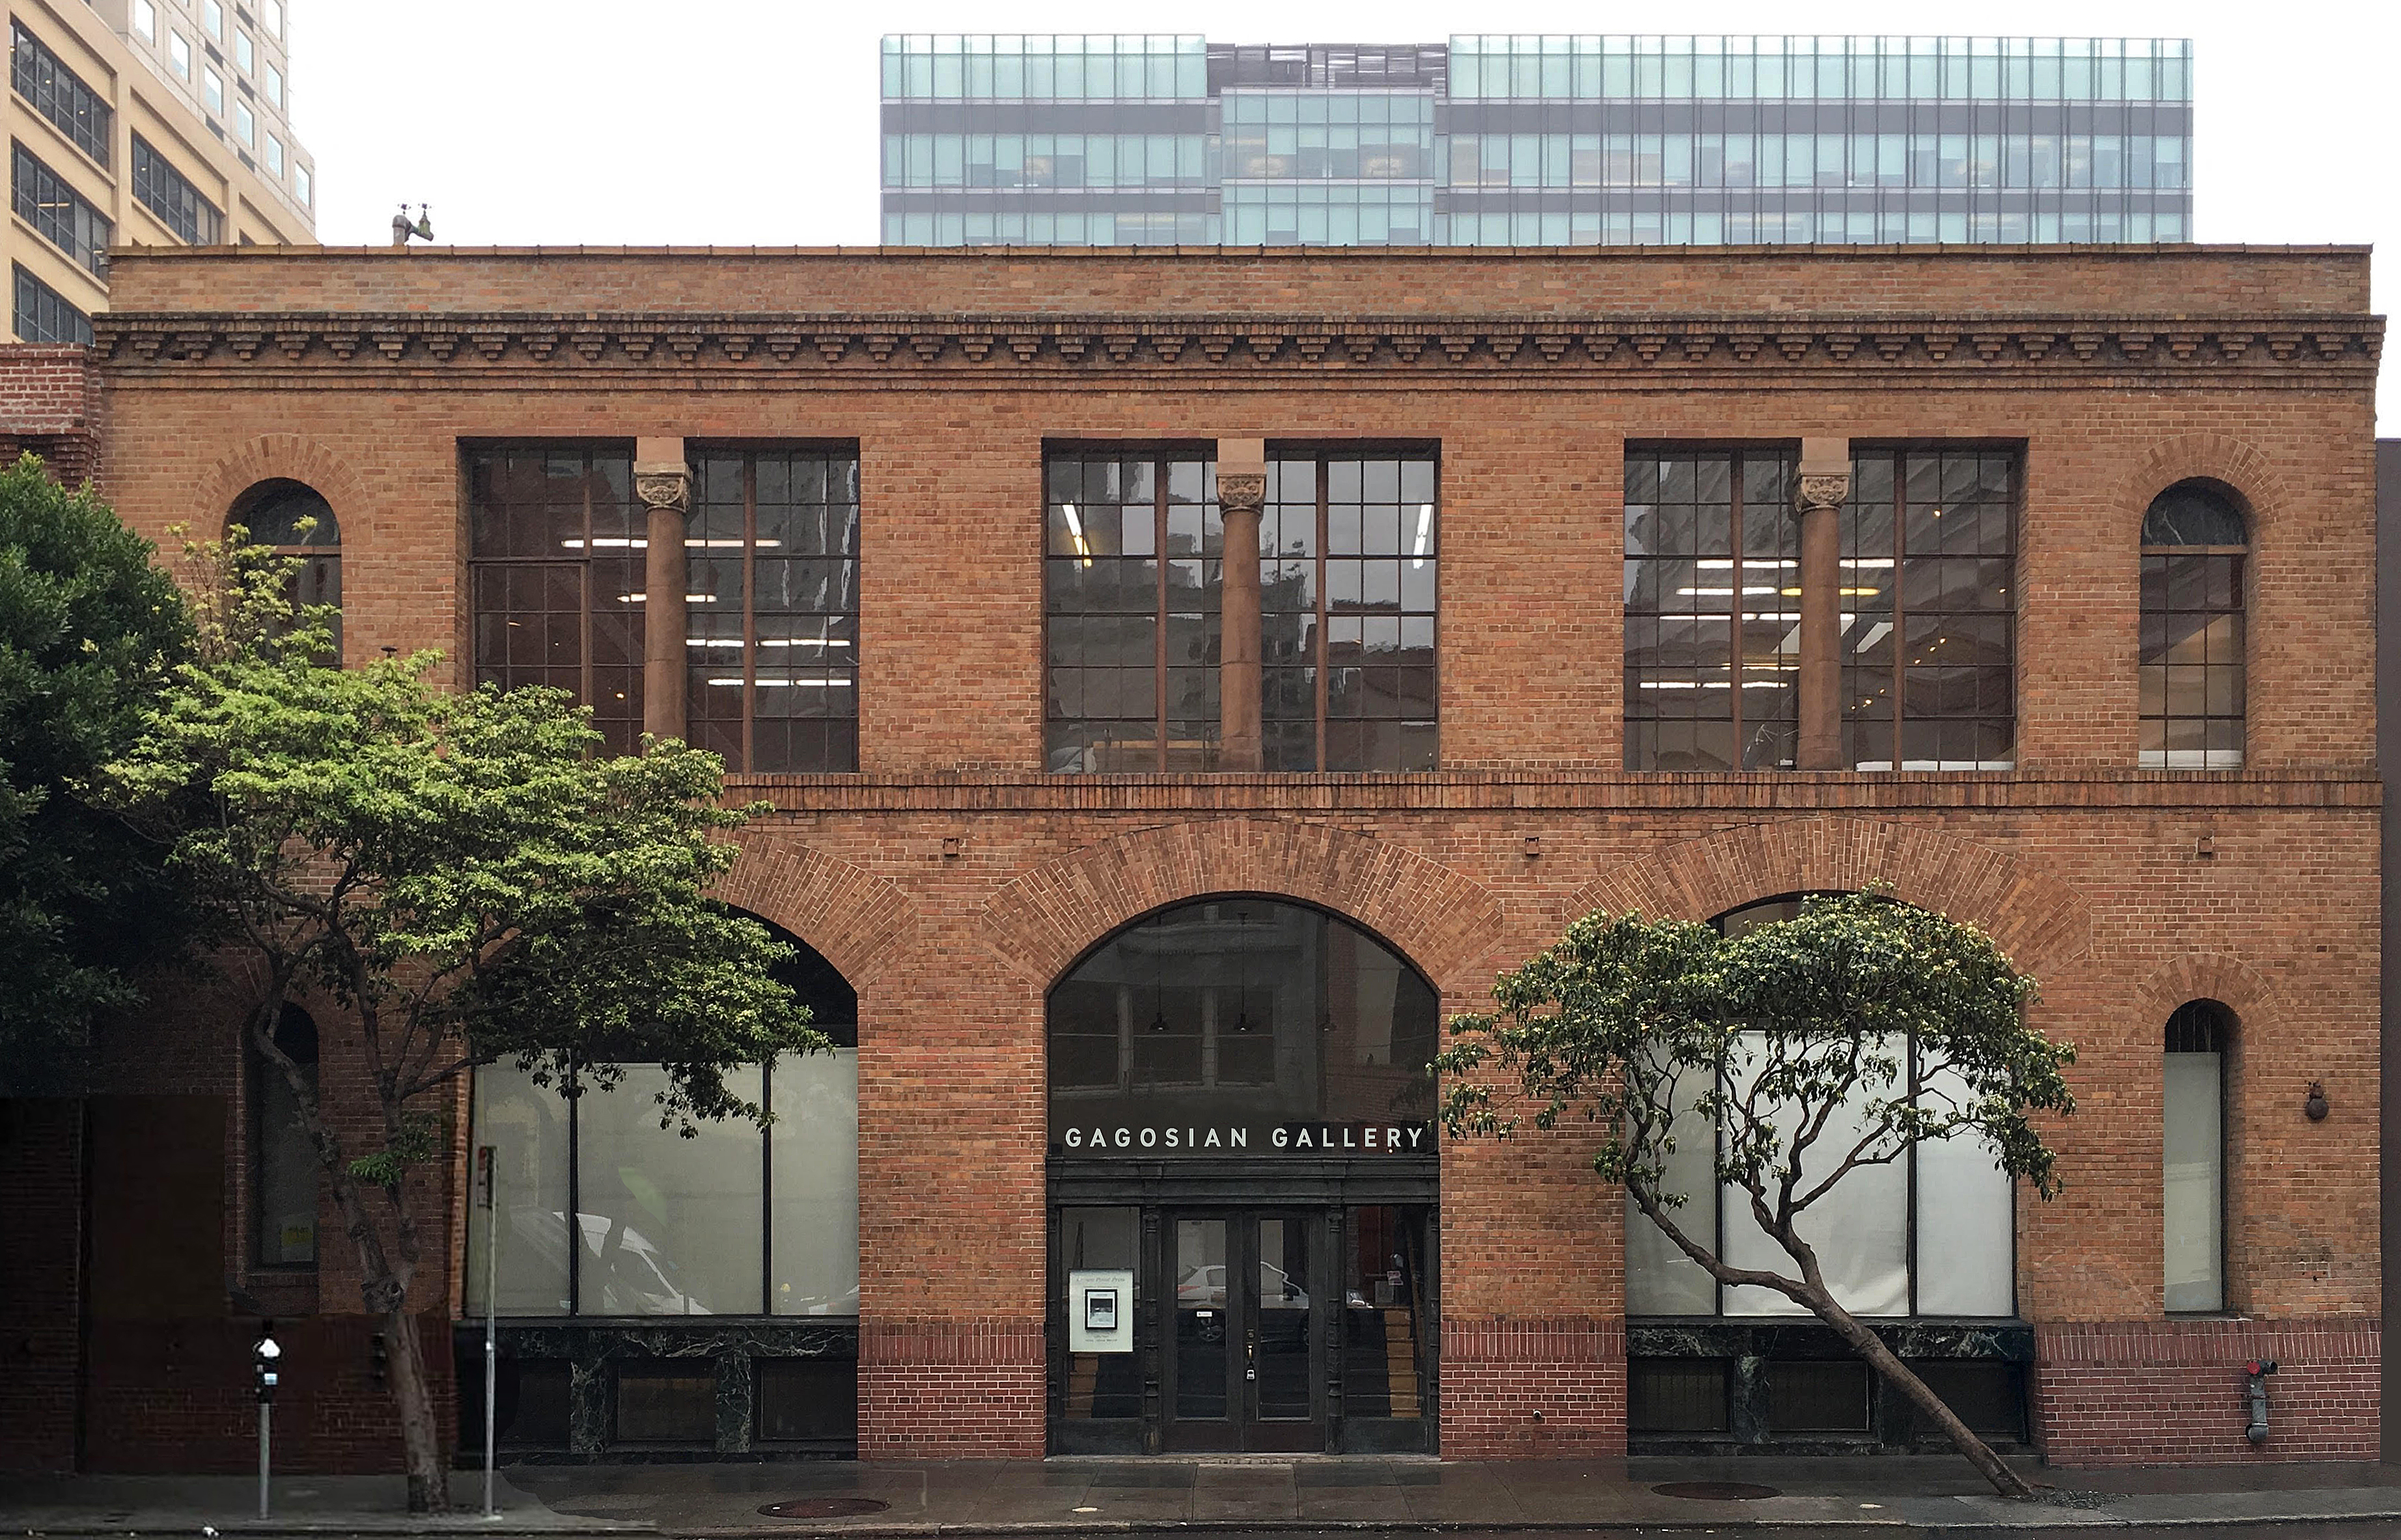 Why Releases Renders Of The New Gagosian Gallery In San